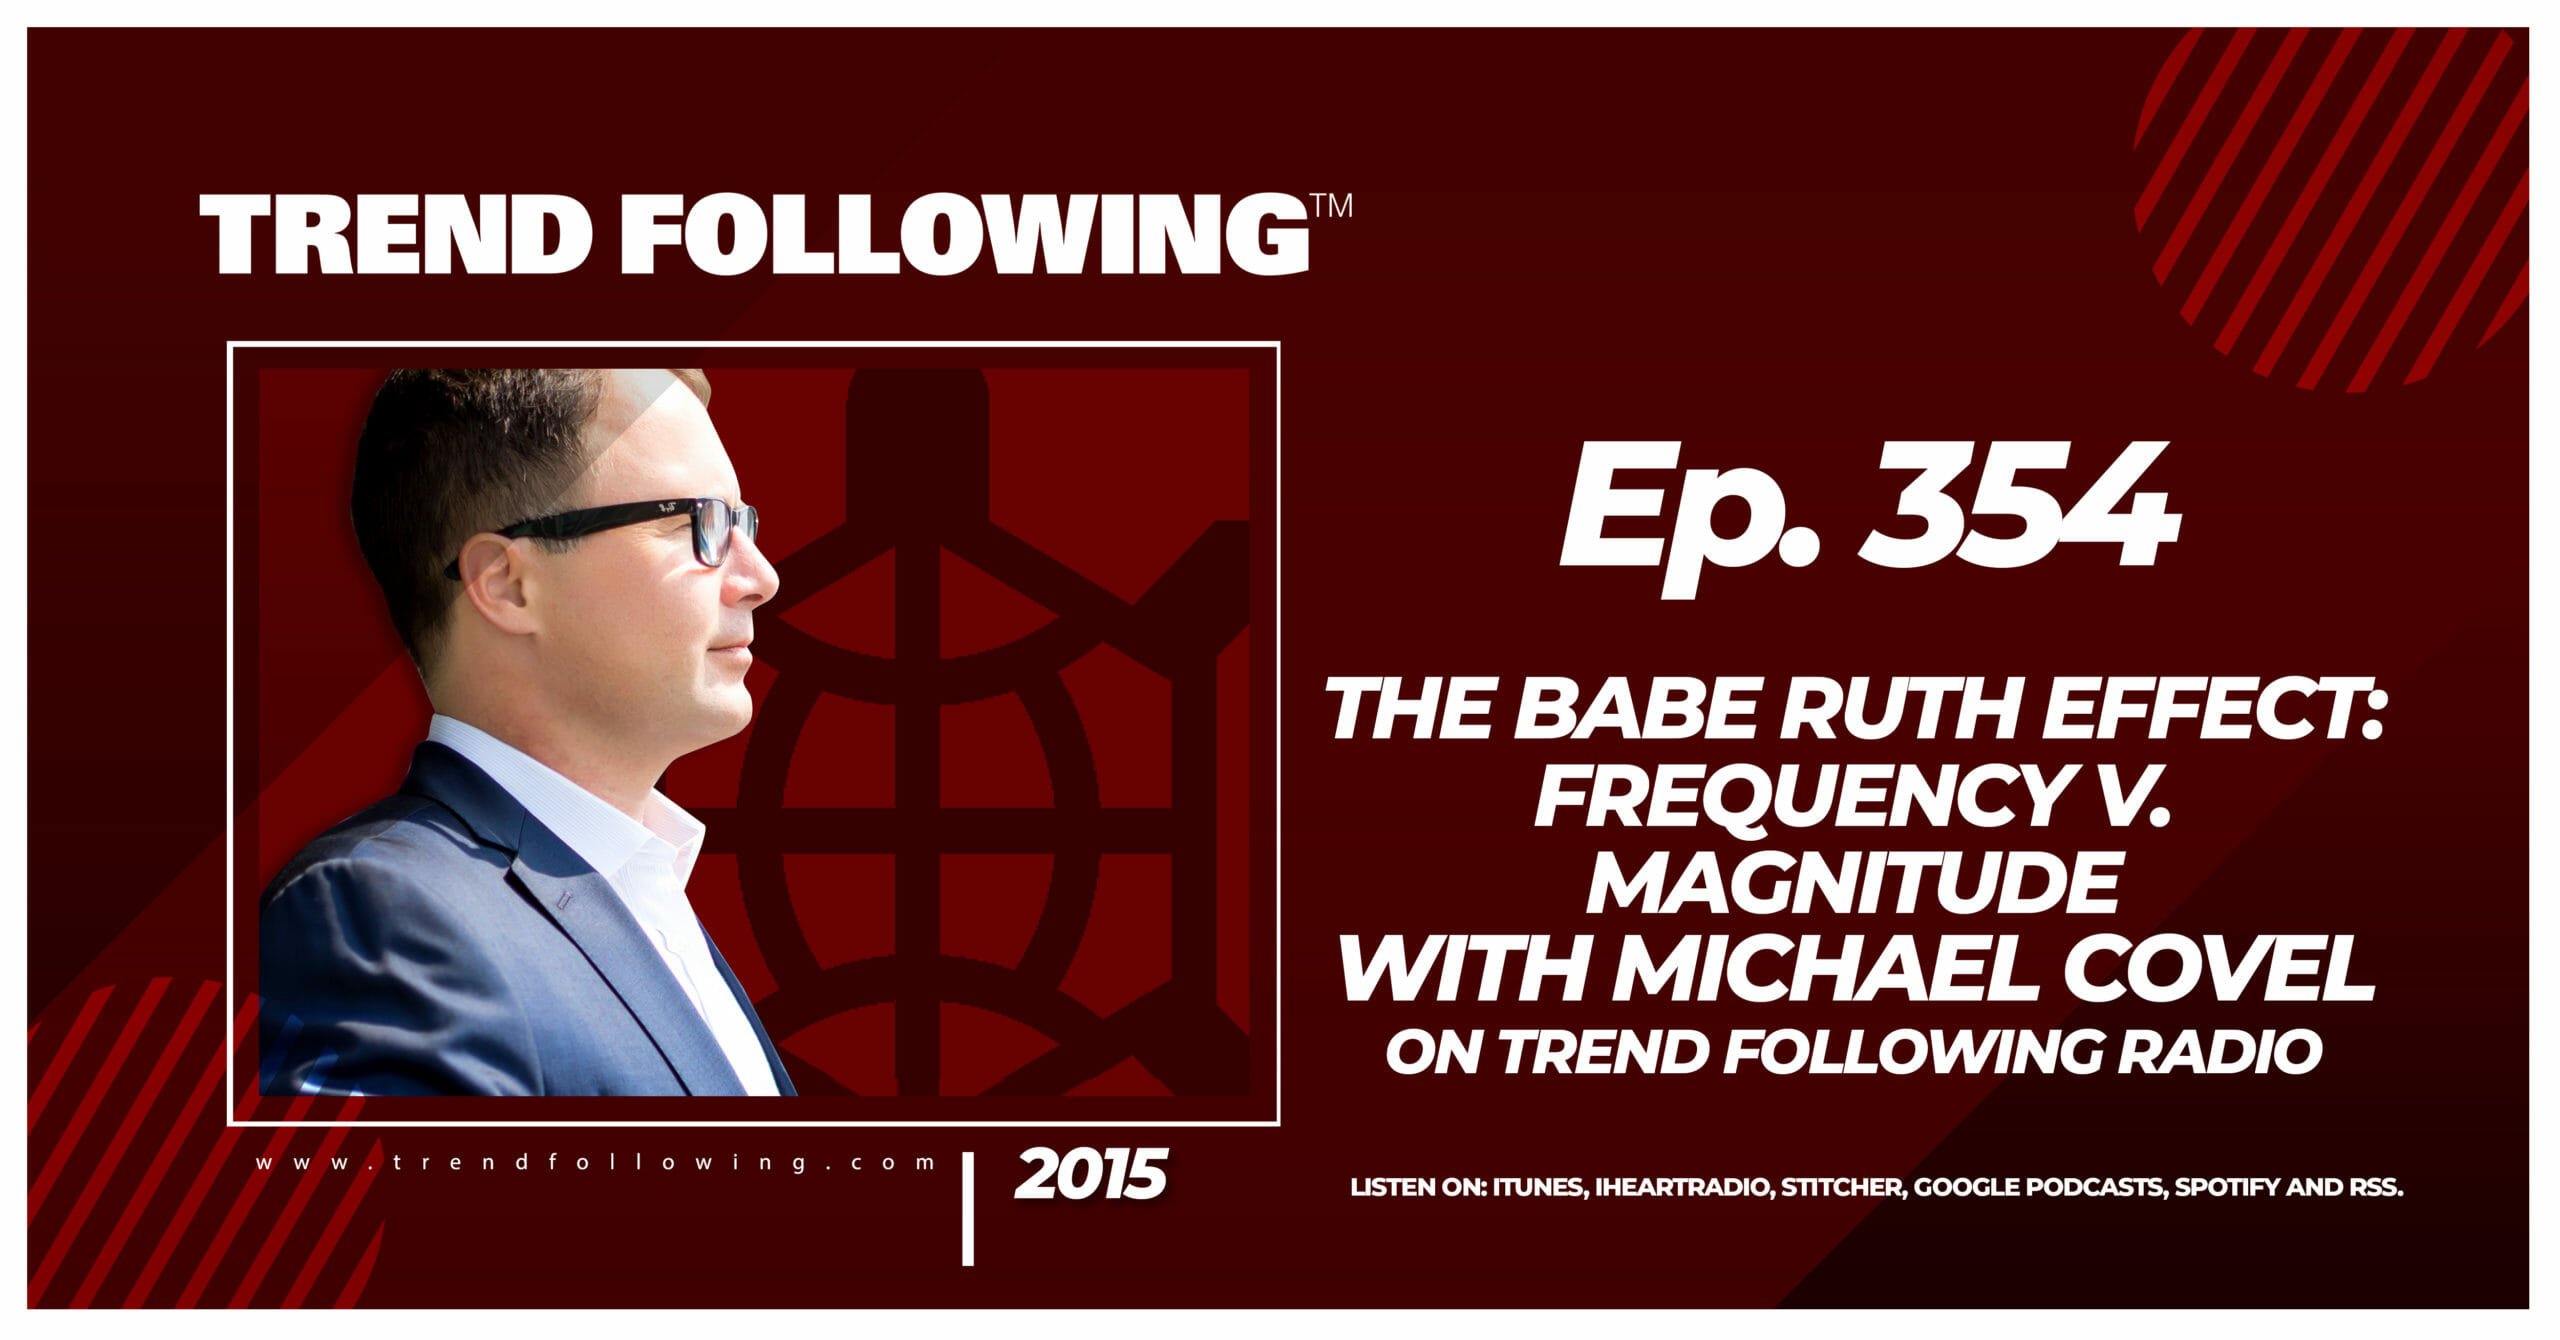 The Babe Ruth Effect: Frequency v. Magnitude with Michael Covel on Trend Following Radio